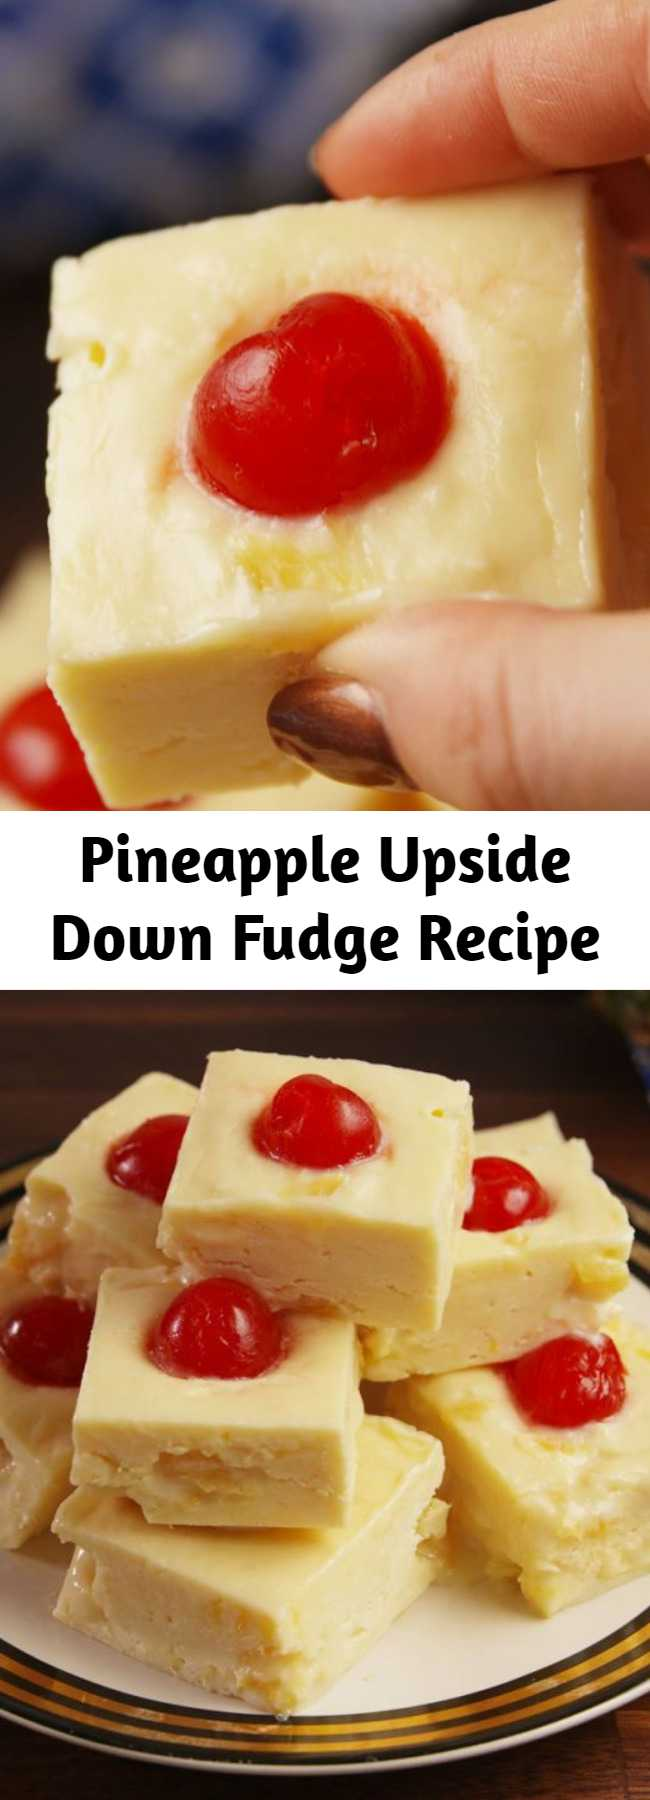 Pineapple Upside Down Fudge Recipe - A classic cake is turned into fudge. We're FLIPPING out over how good this Pineapple Upside-Down Fudge is. #recipe #fudge #easyrecipes #pineapple #whitechocolate #dessert #cherry